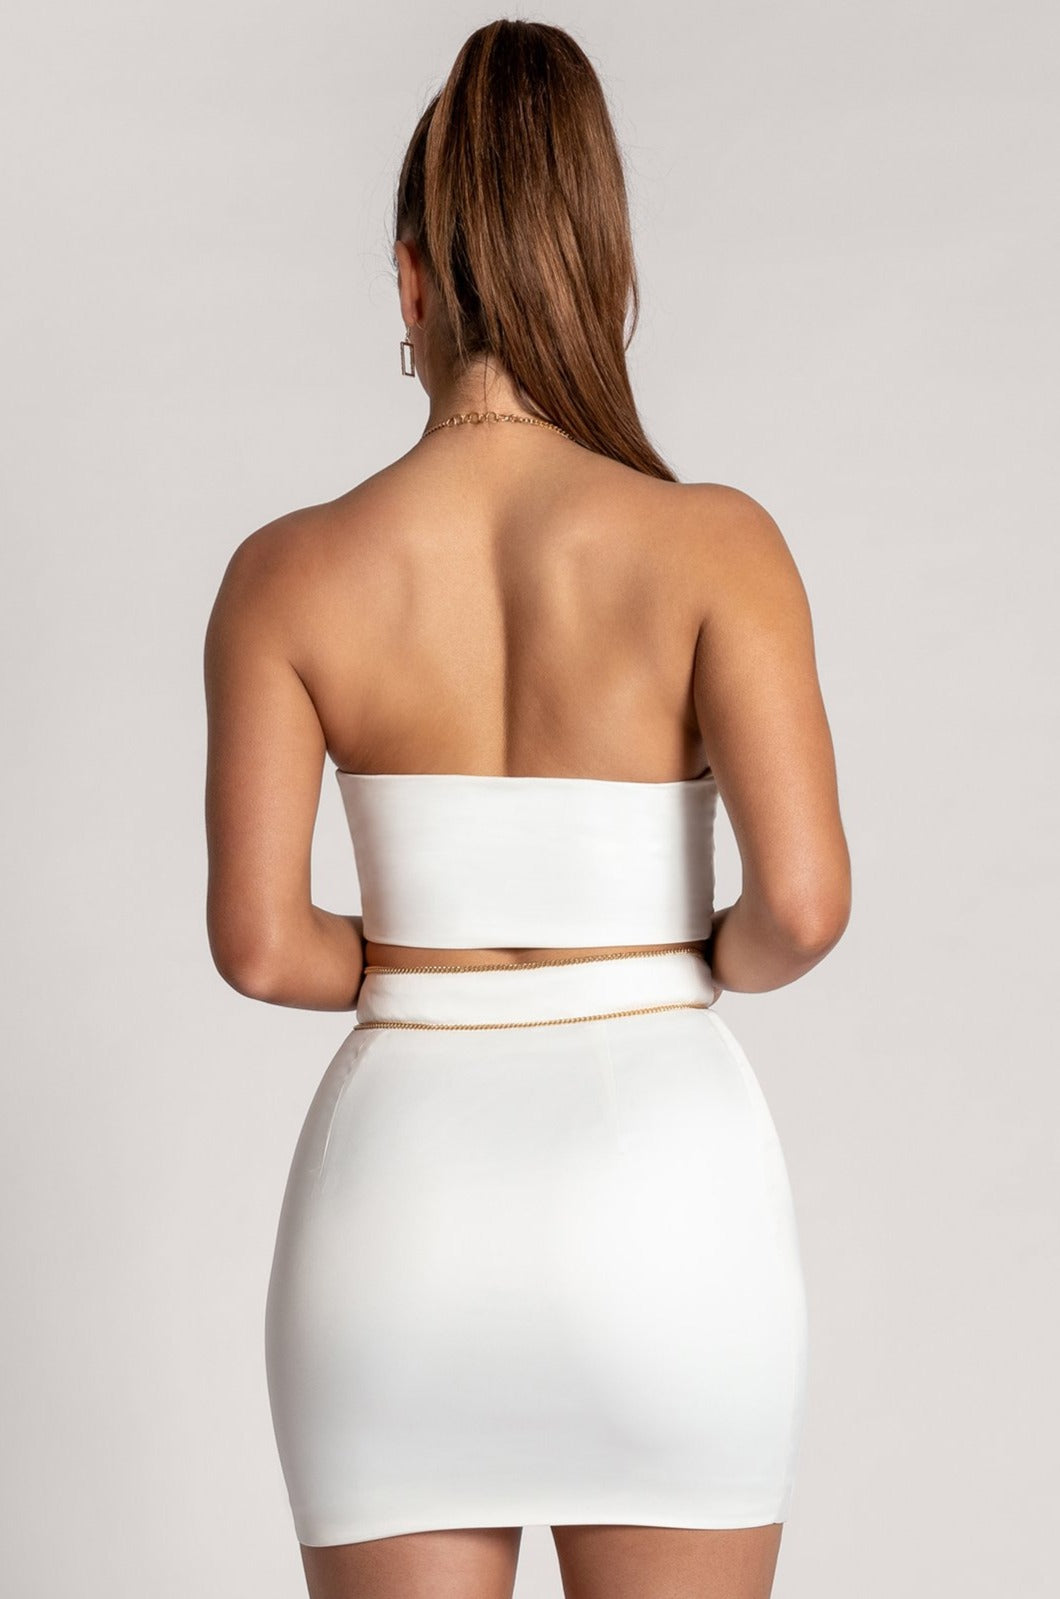 Emmalyn Cowl Neck Chain Strap Crop Top - White - MESHKI